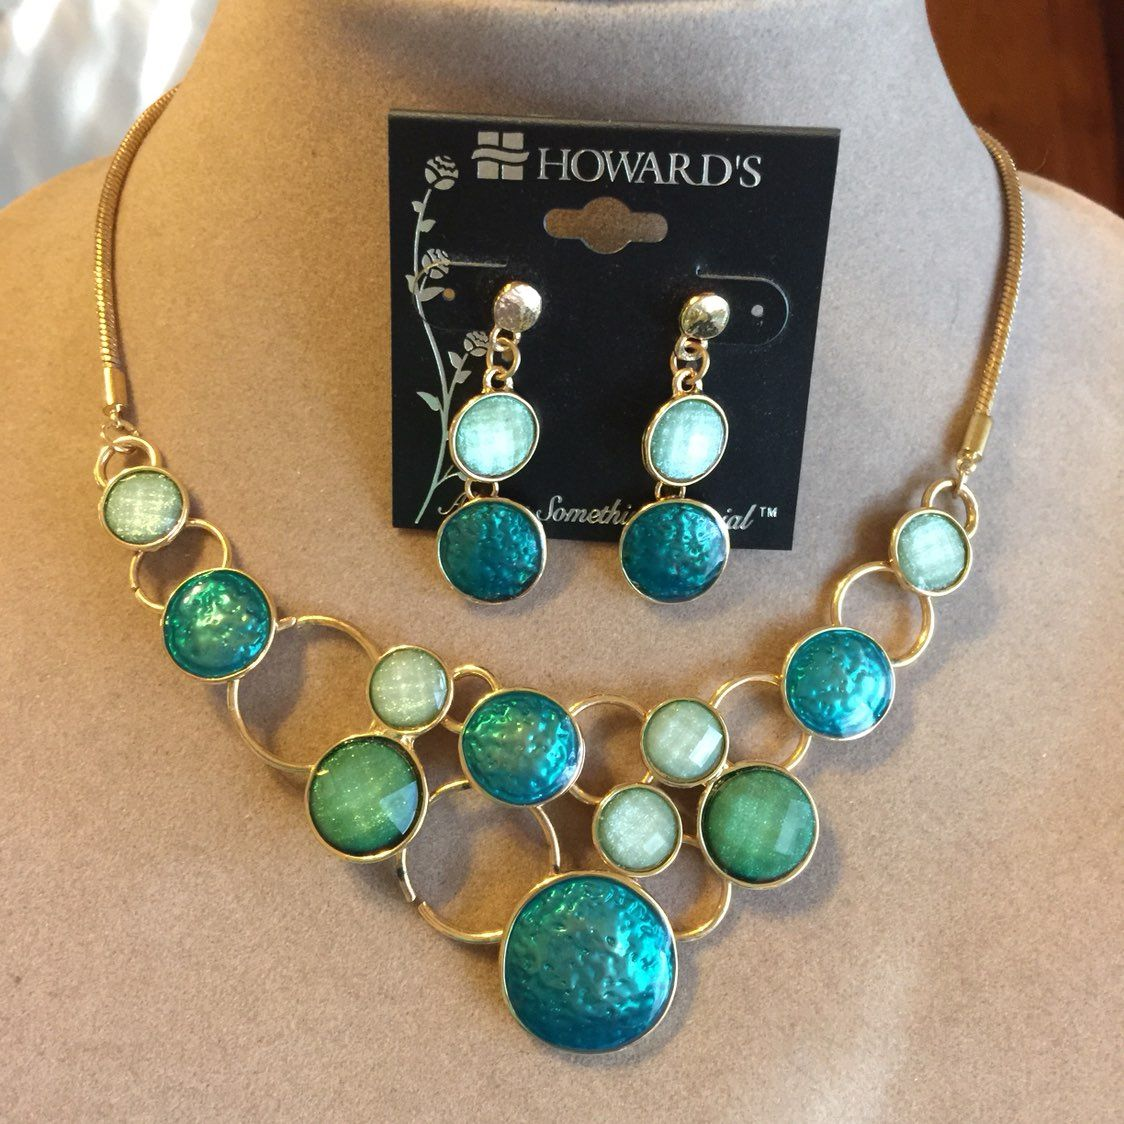 Howard necklace and earring set Mercari BUY & SELL